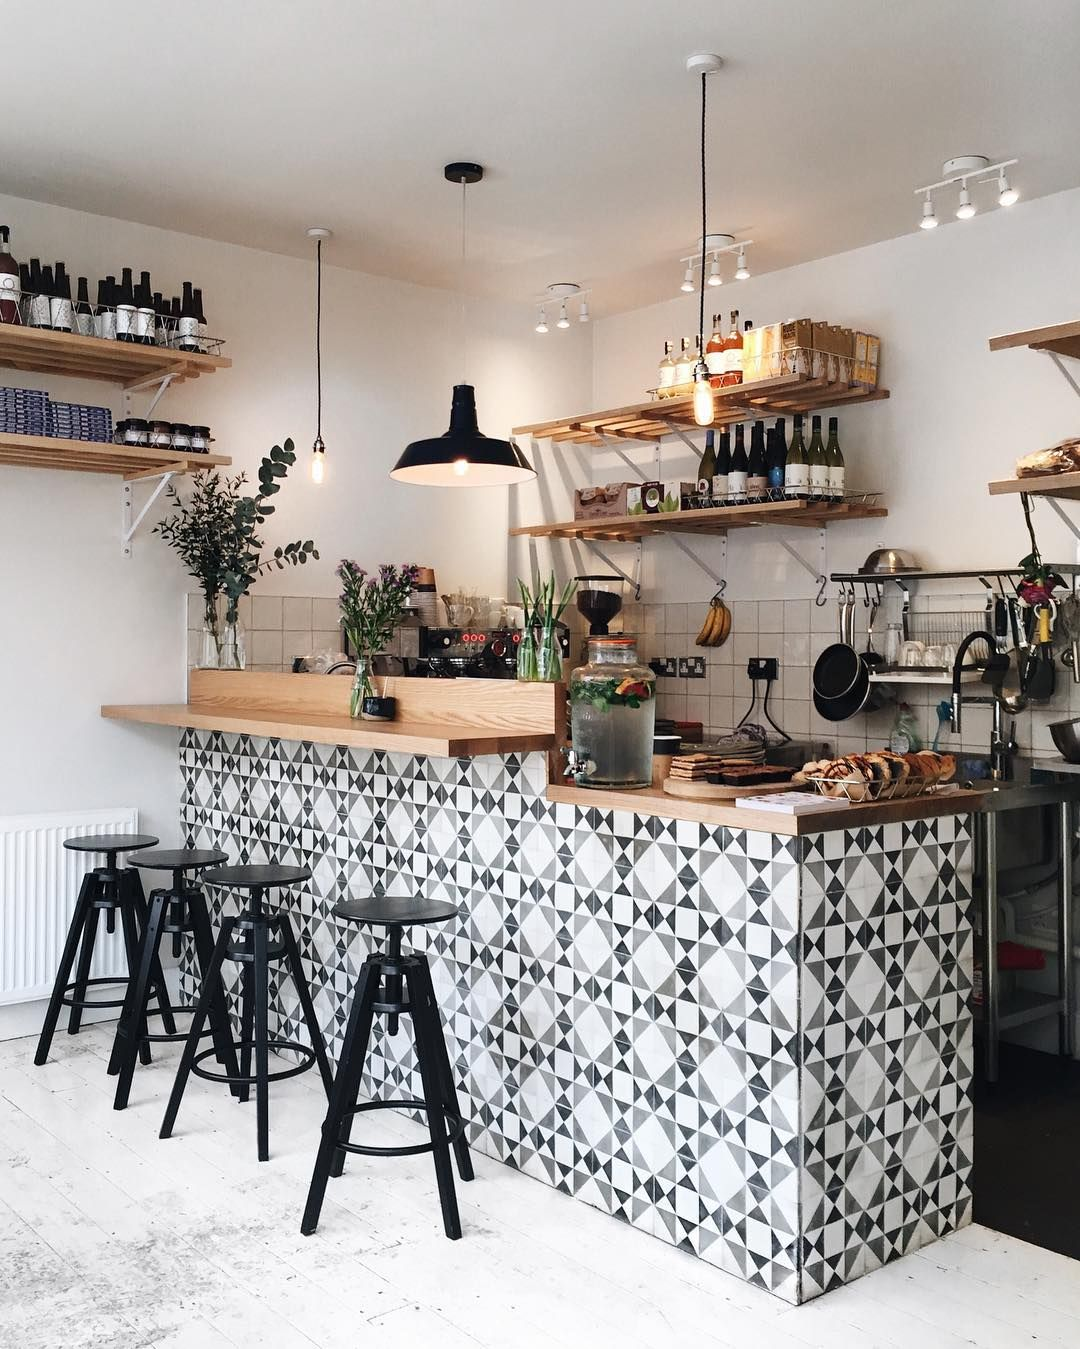 14 Coffee Shops In London You Want To Instagram Cafe Interior